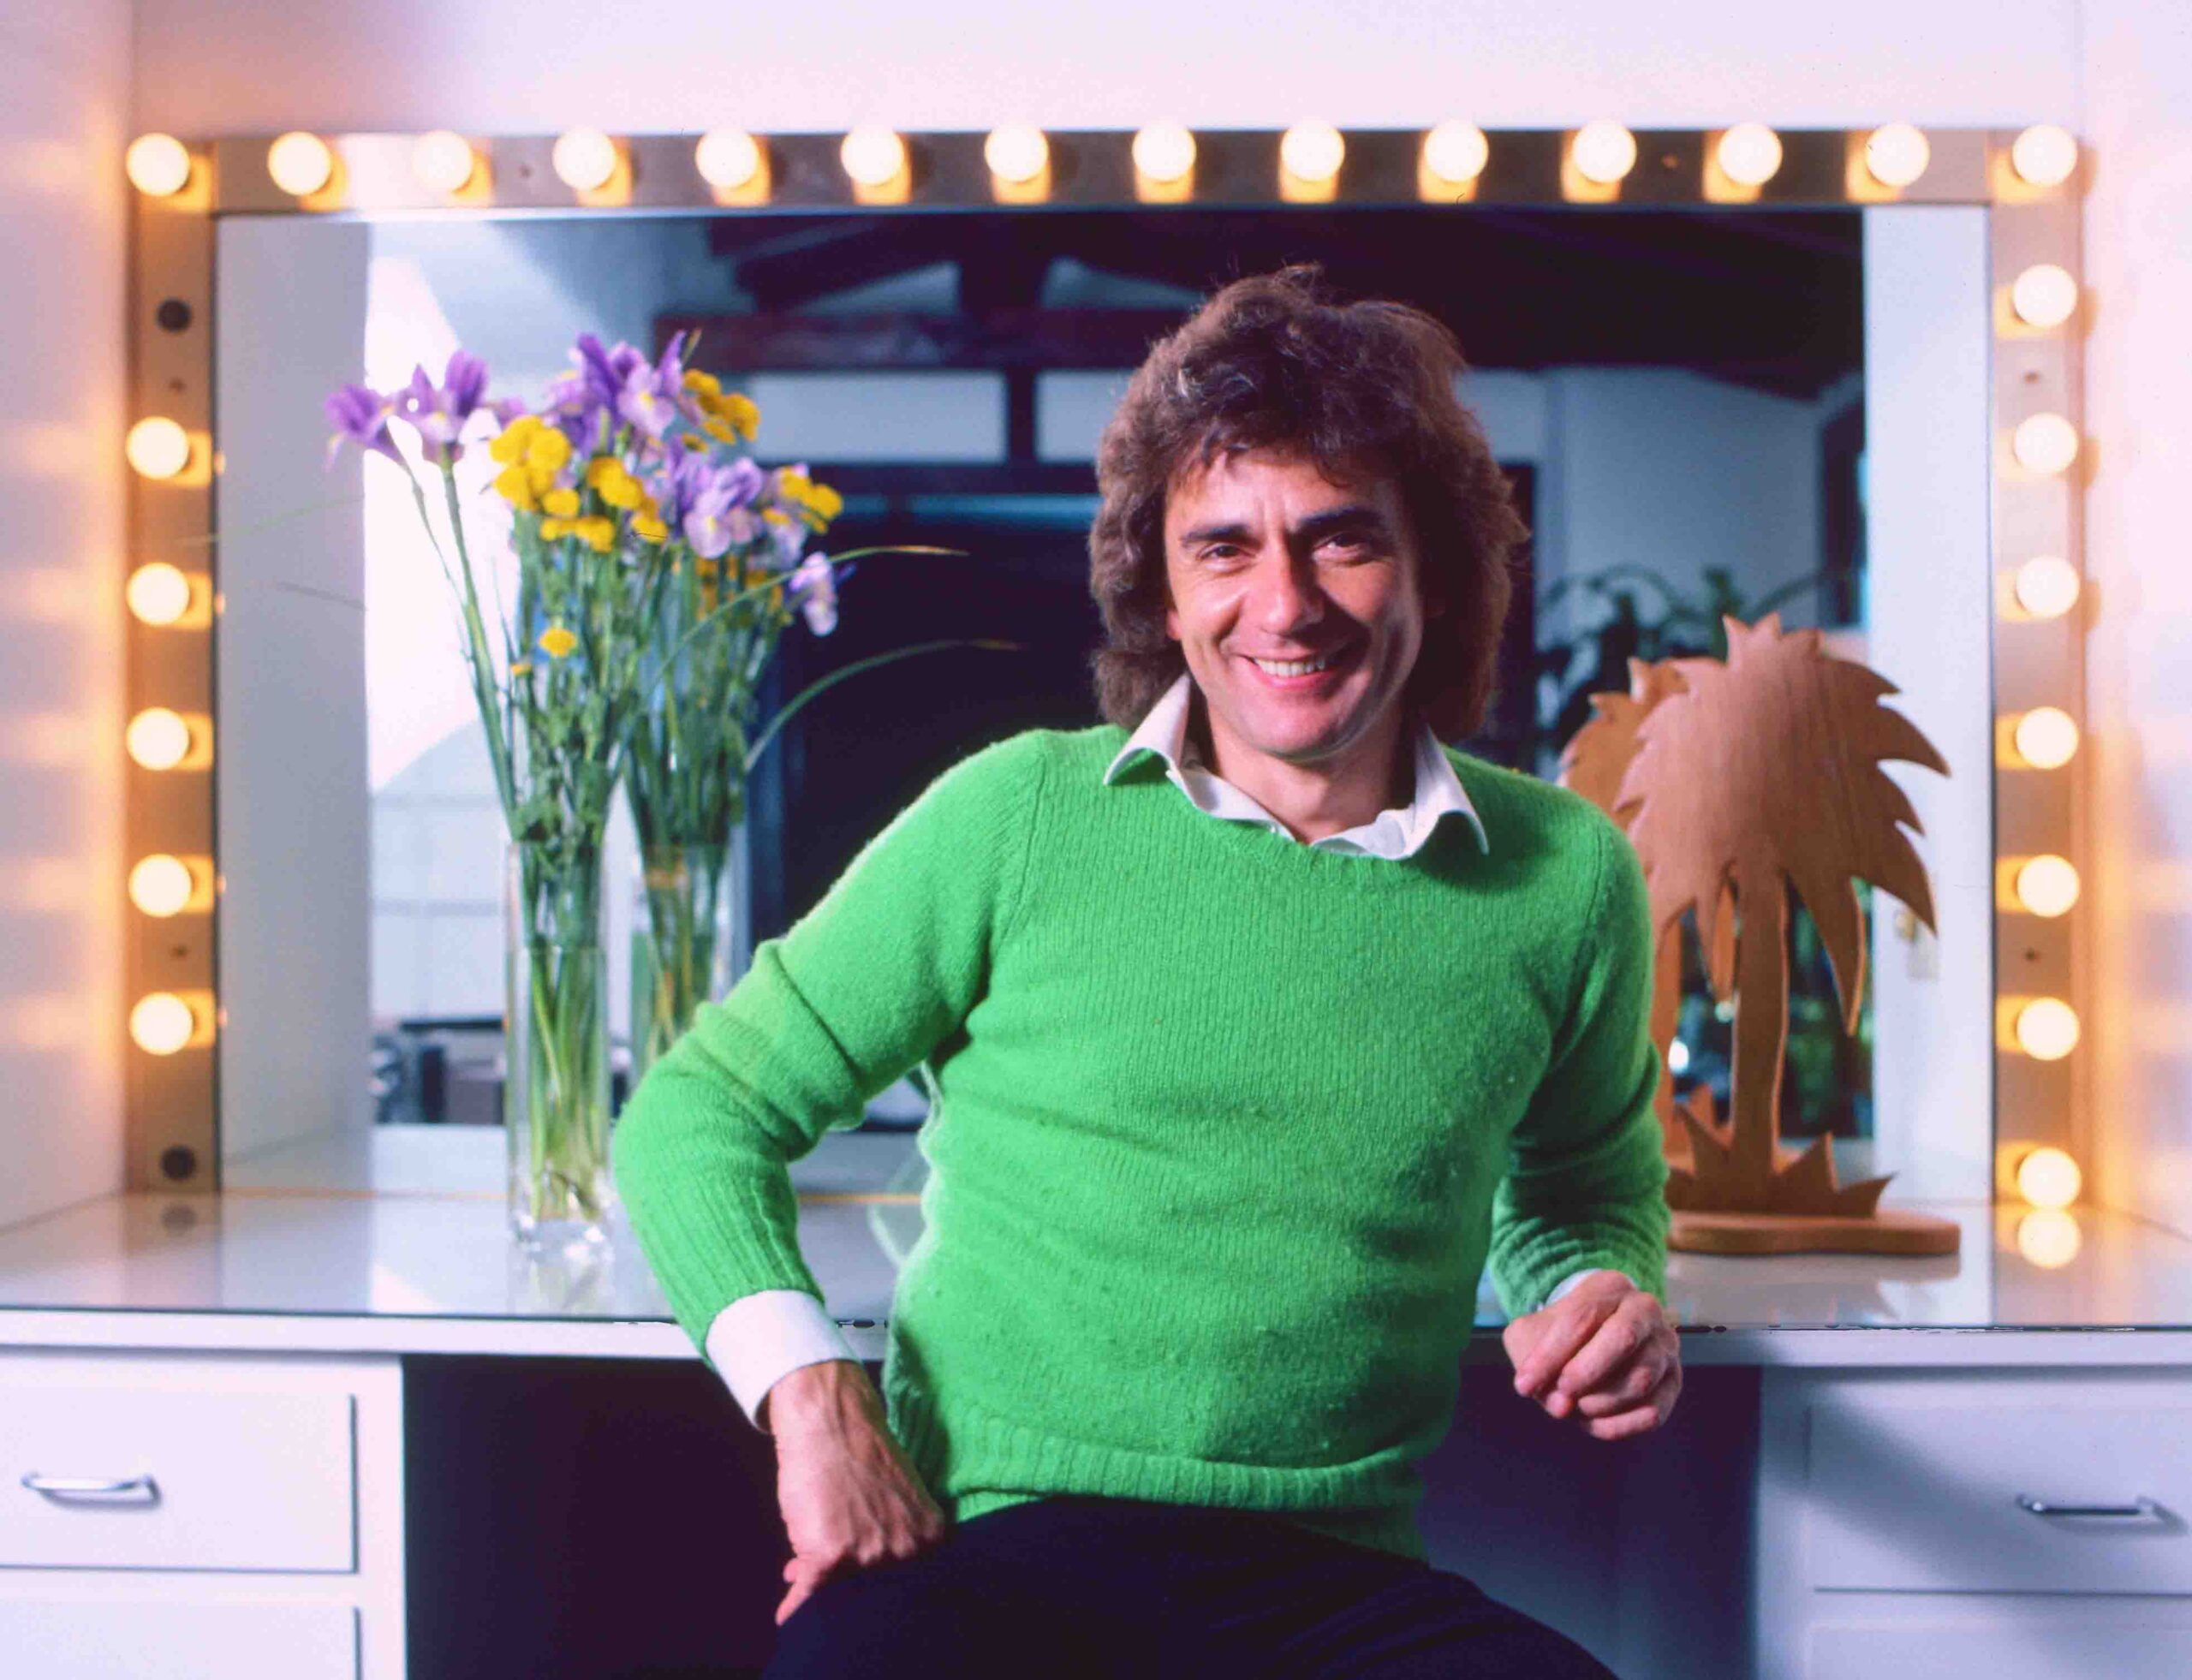 Dudley Moore 1980 5bwcs scaled 1 20 Things You Never Knew About Dudley Moore